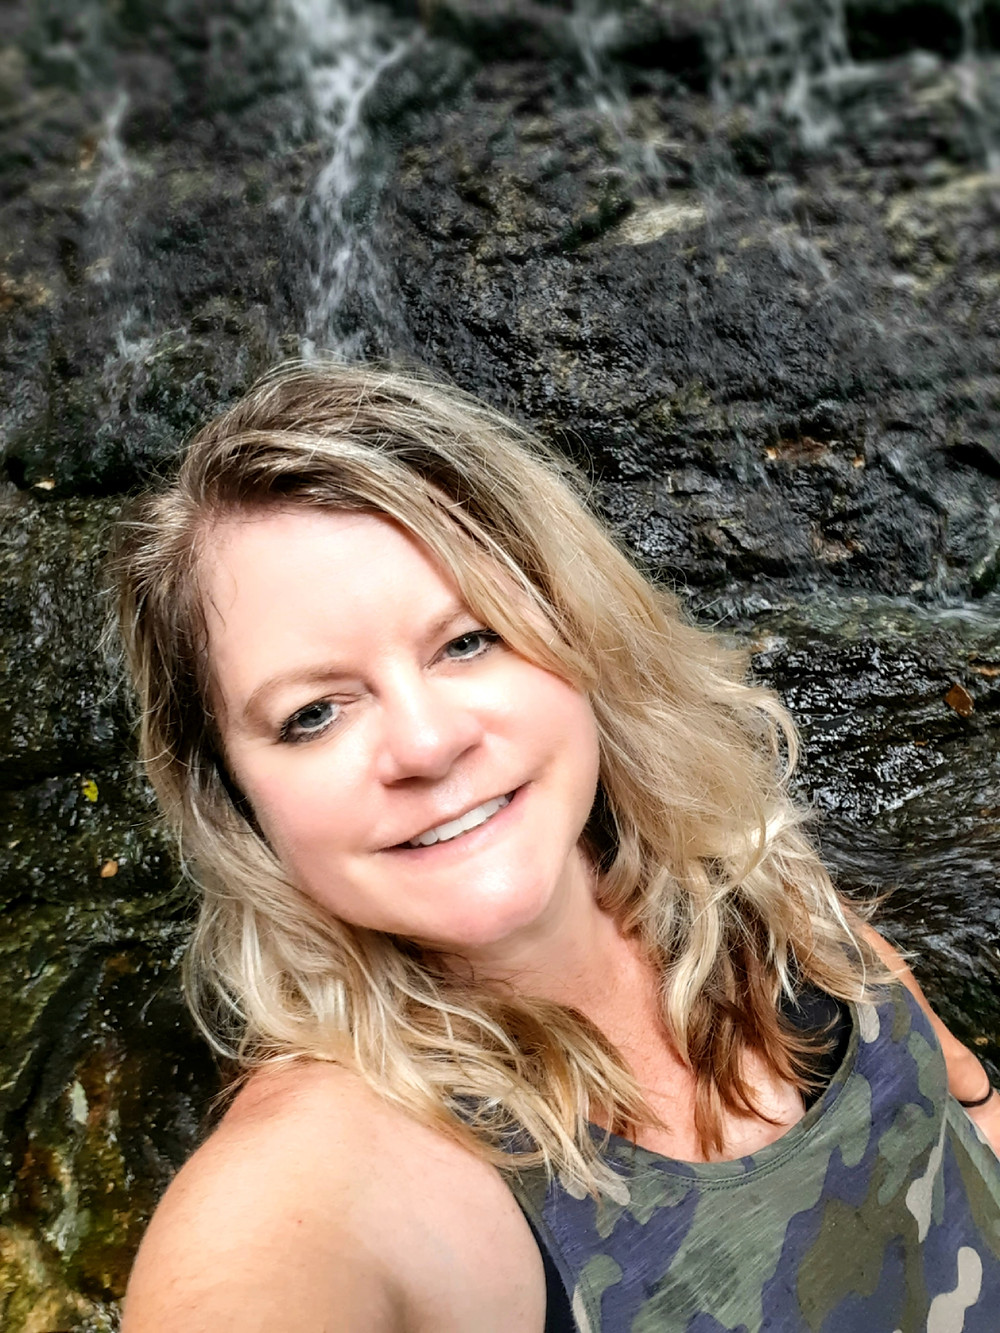 Angie Kunze, travel blogger, creative photographer at Toto, we're not in Kansas anymore Travel blog and creative photography art sales